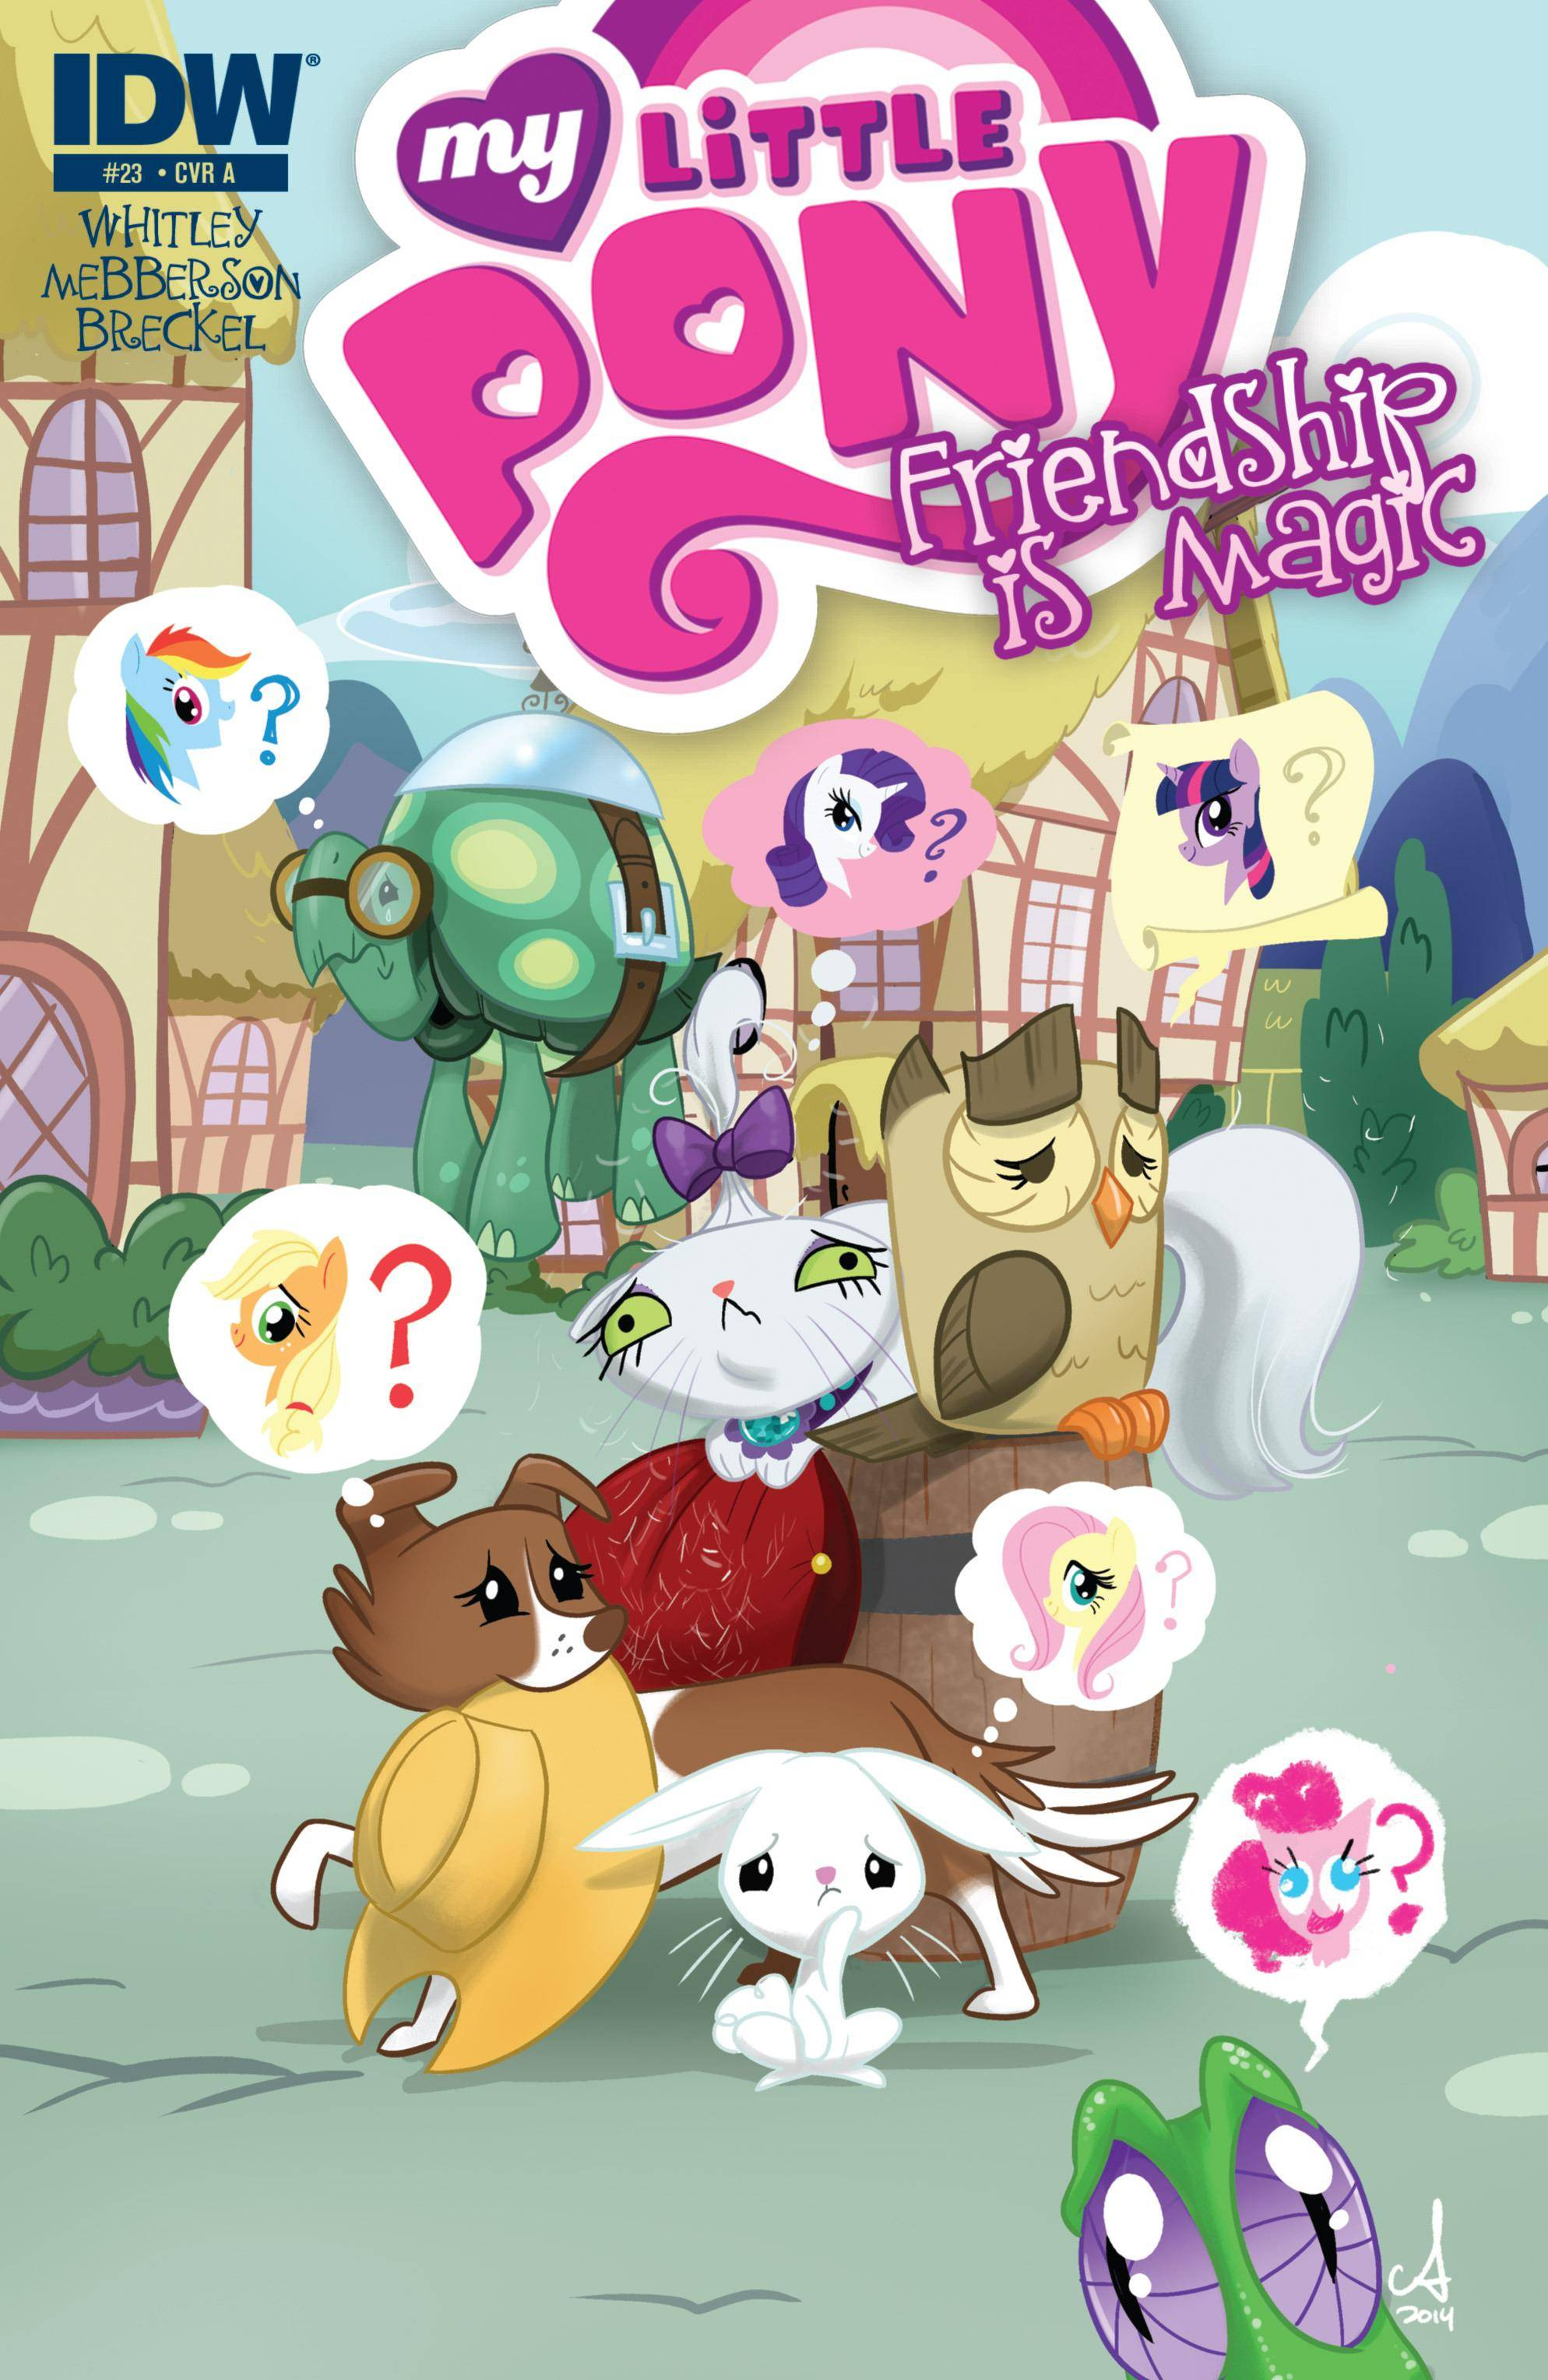 My Little Pony - Friendship Is Magic 023 2014 digital 2 covers